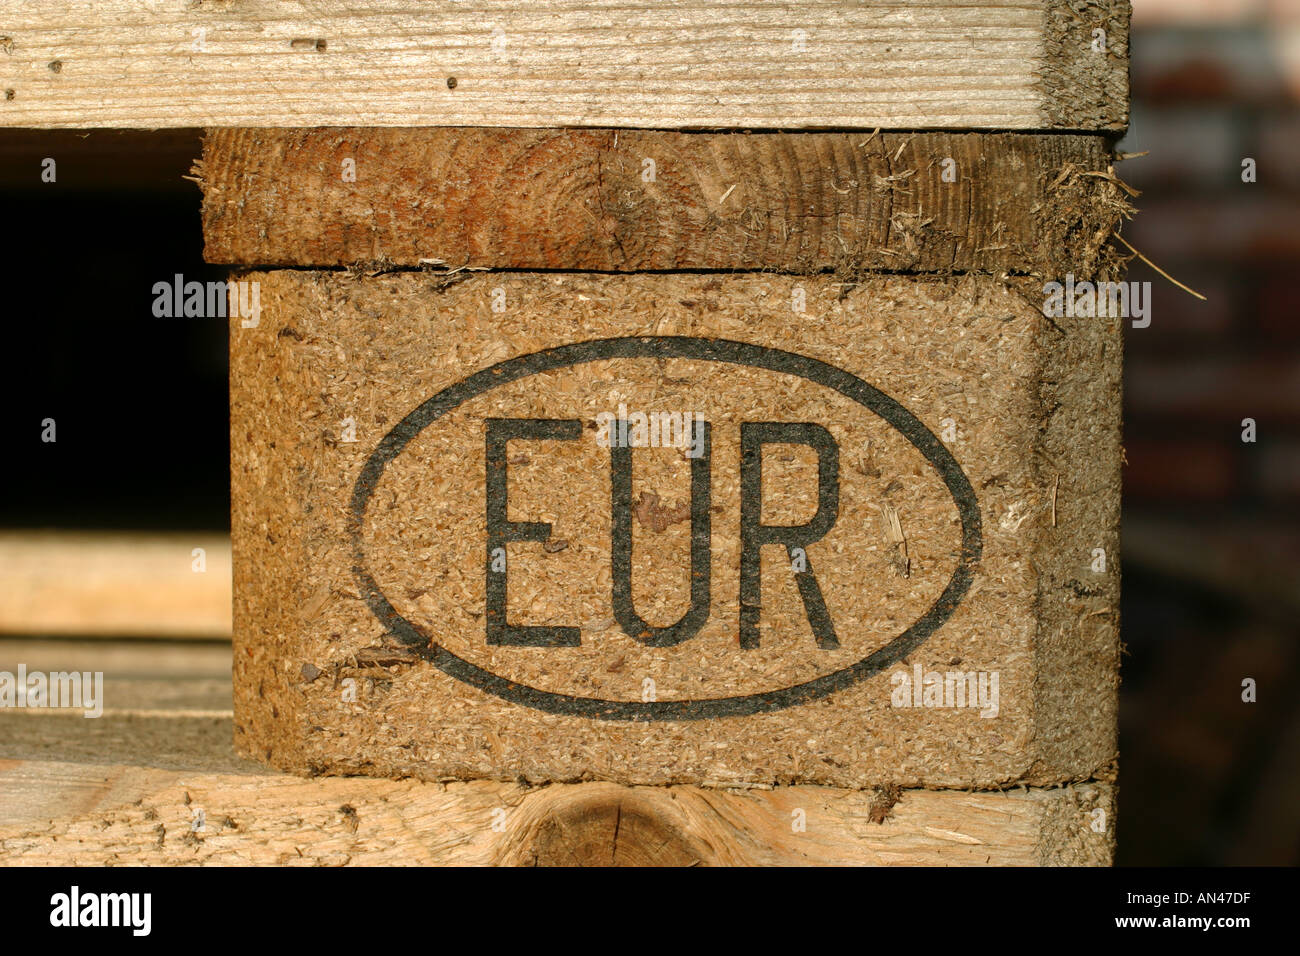 EUR brand, standard approved issue - Stock Image